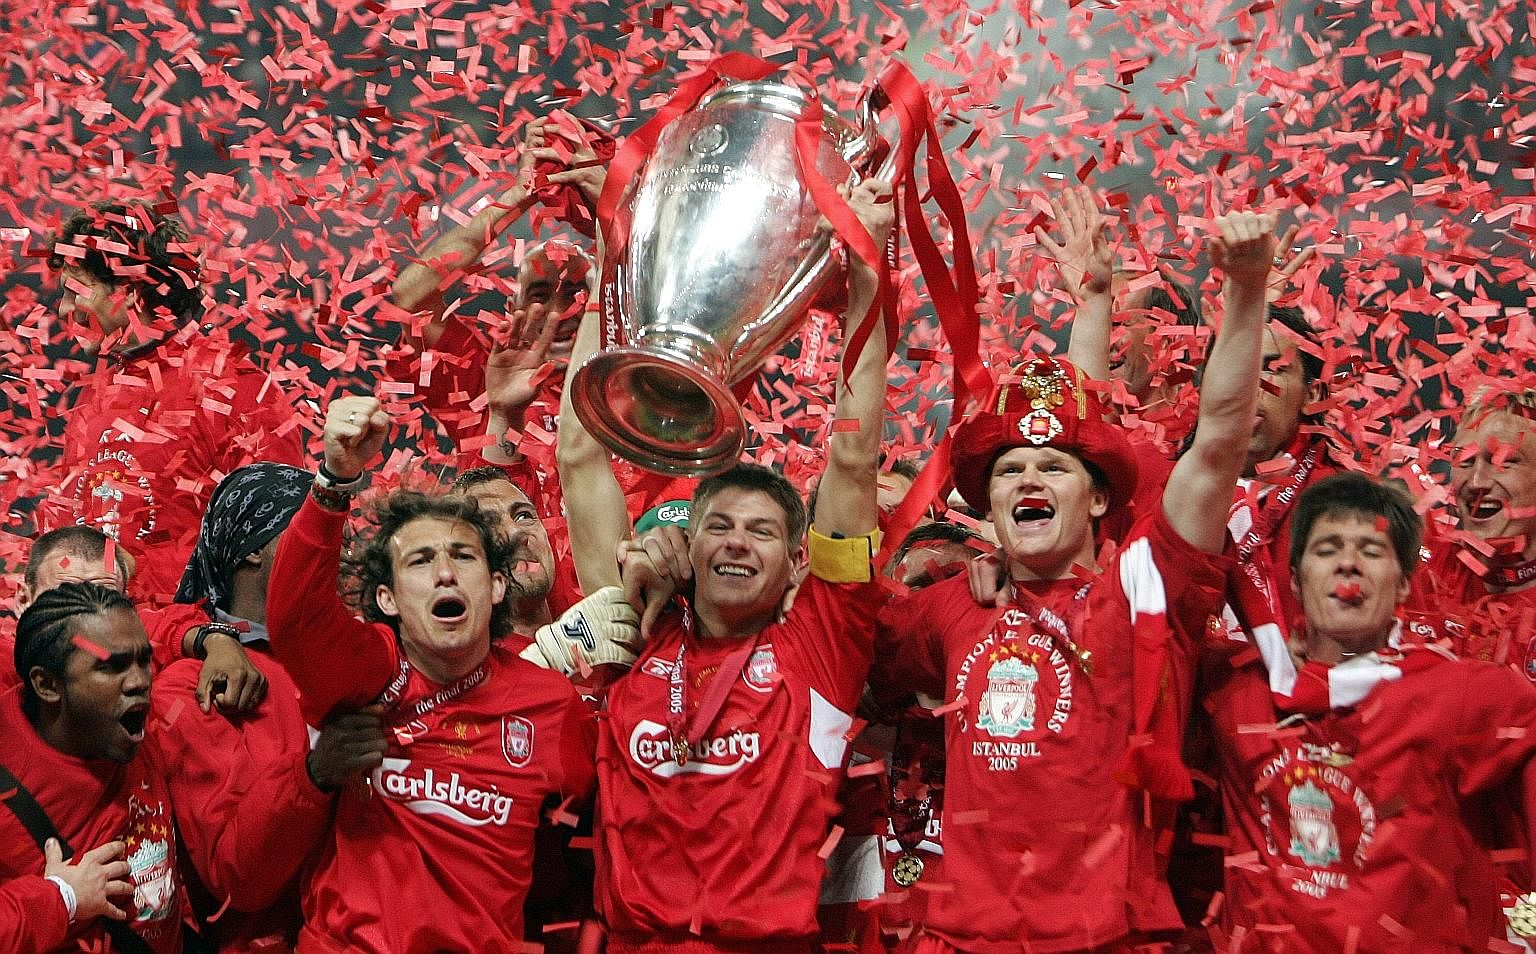 Liverpool's captain Steven Gerrard (holding the trophy) and his jubilant teammates on May 25, 2005, at the end of the Uefa Champions League football final at the Ataturk Stadium in Istanbul, where Liverpool beat AC Milan in dramatic fashion. Reunited